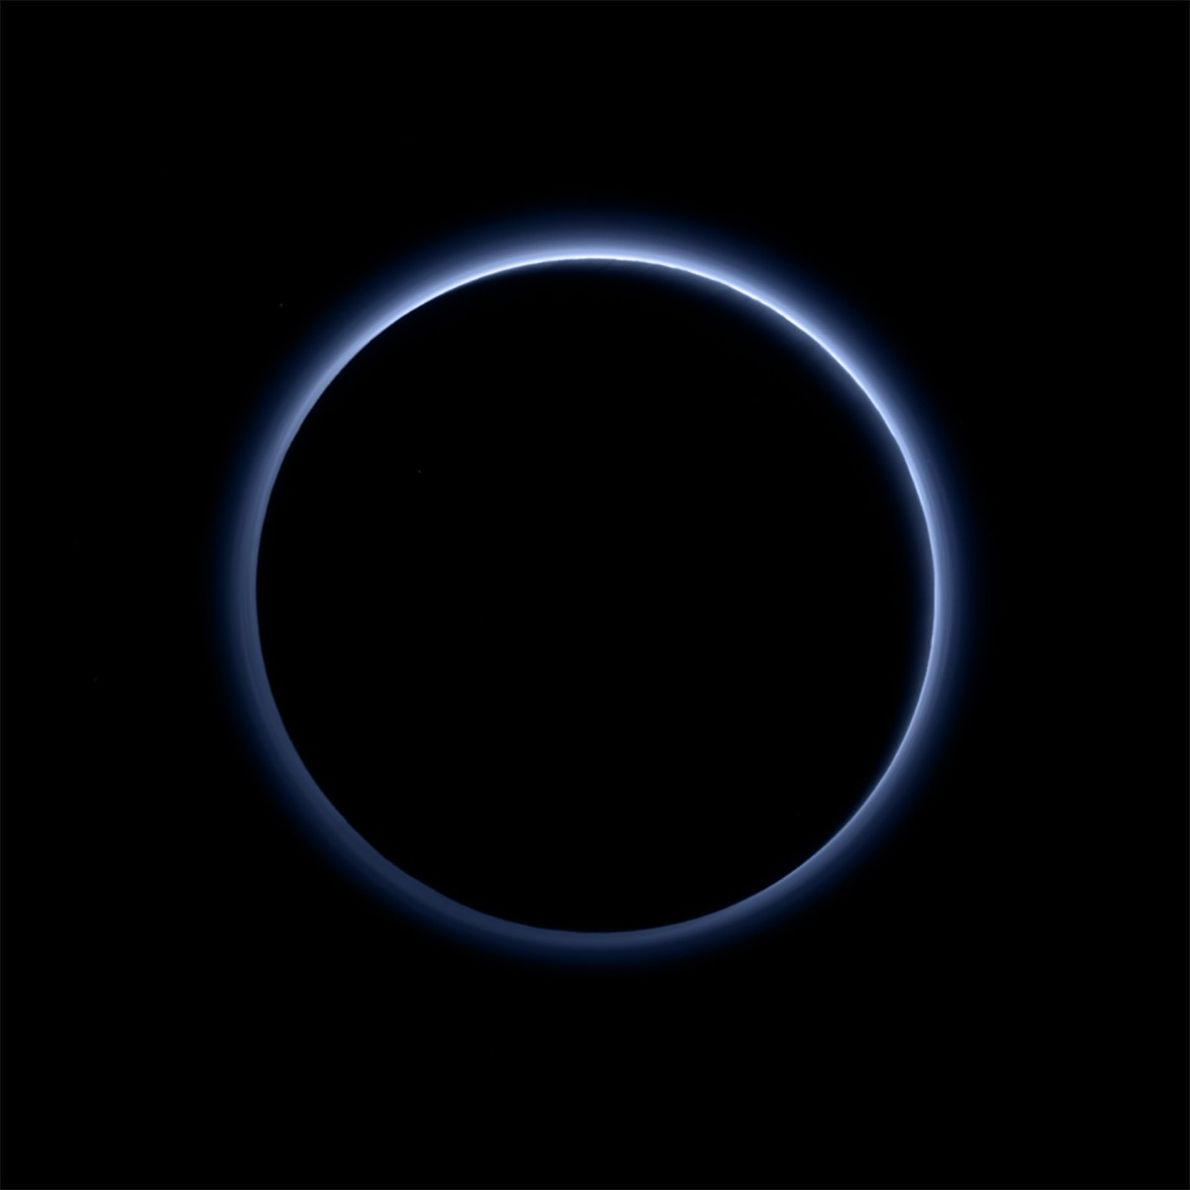 New Horizons took this picture of Pluto with the sun directly behind the dwarf planet, revealing ...